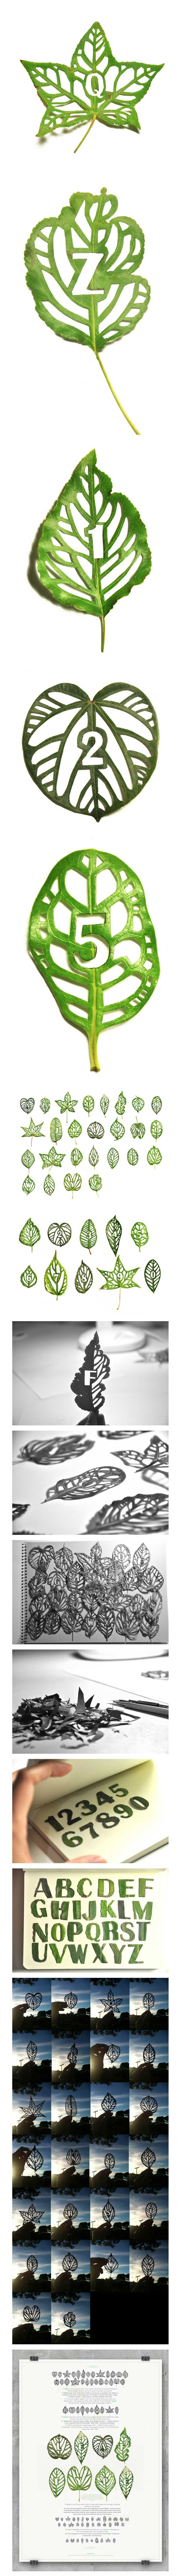 Made from Leaves typeface by Malaysian Graphic Designer Mei Linn  http://www.behance.net/gallery/Leaf-Type/5430287